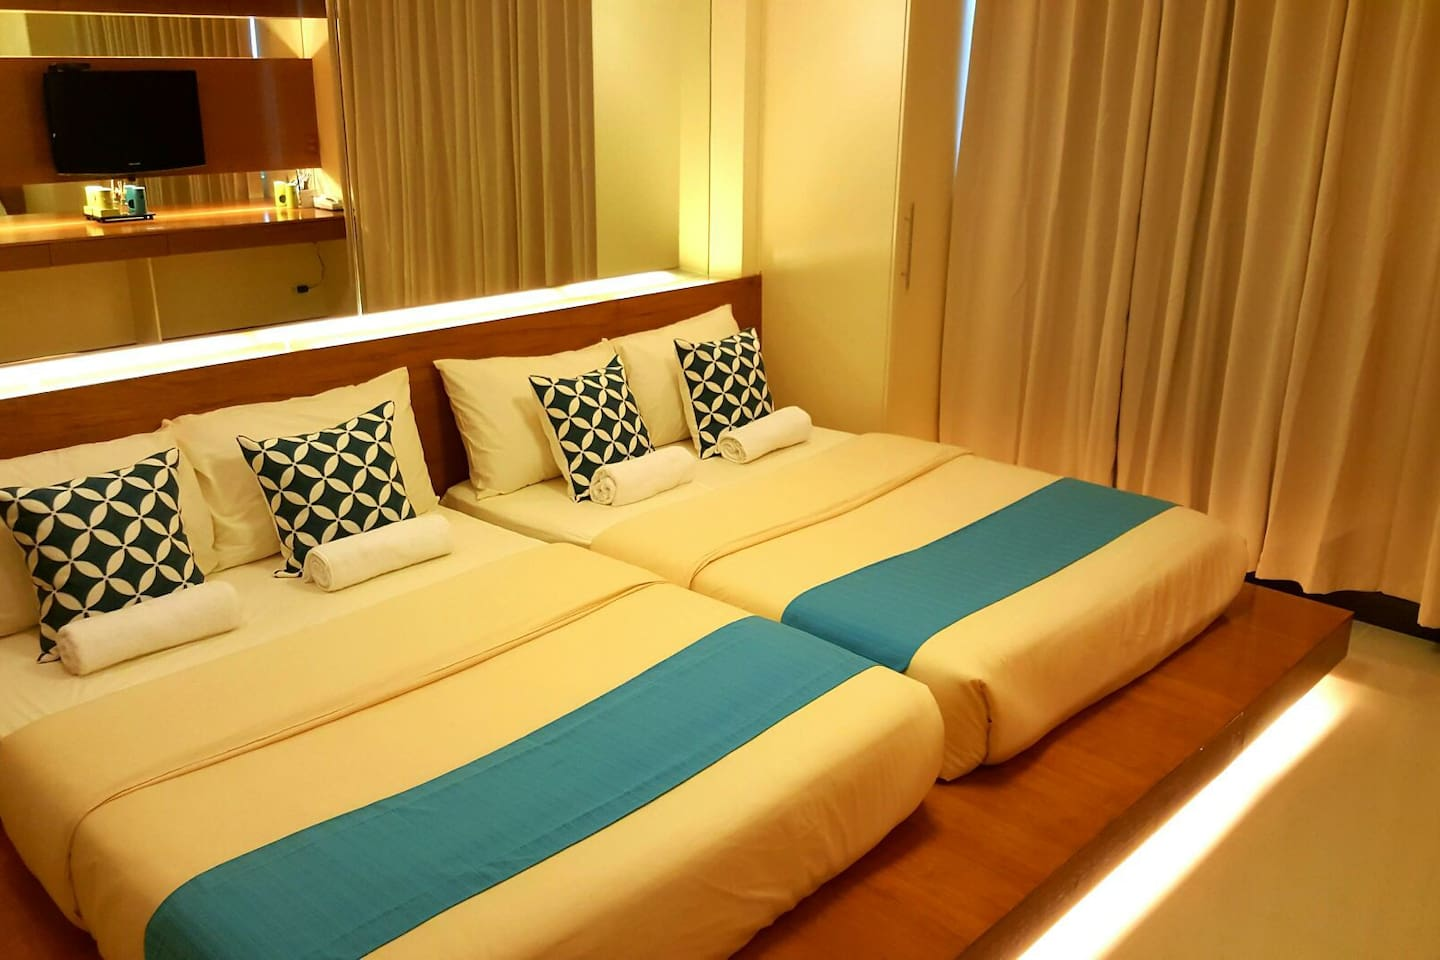 Studio Type Unit with 2 Full Beds, entire unit is for the exclusive use of guests.